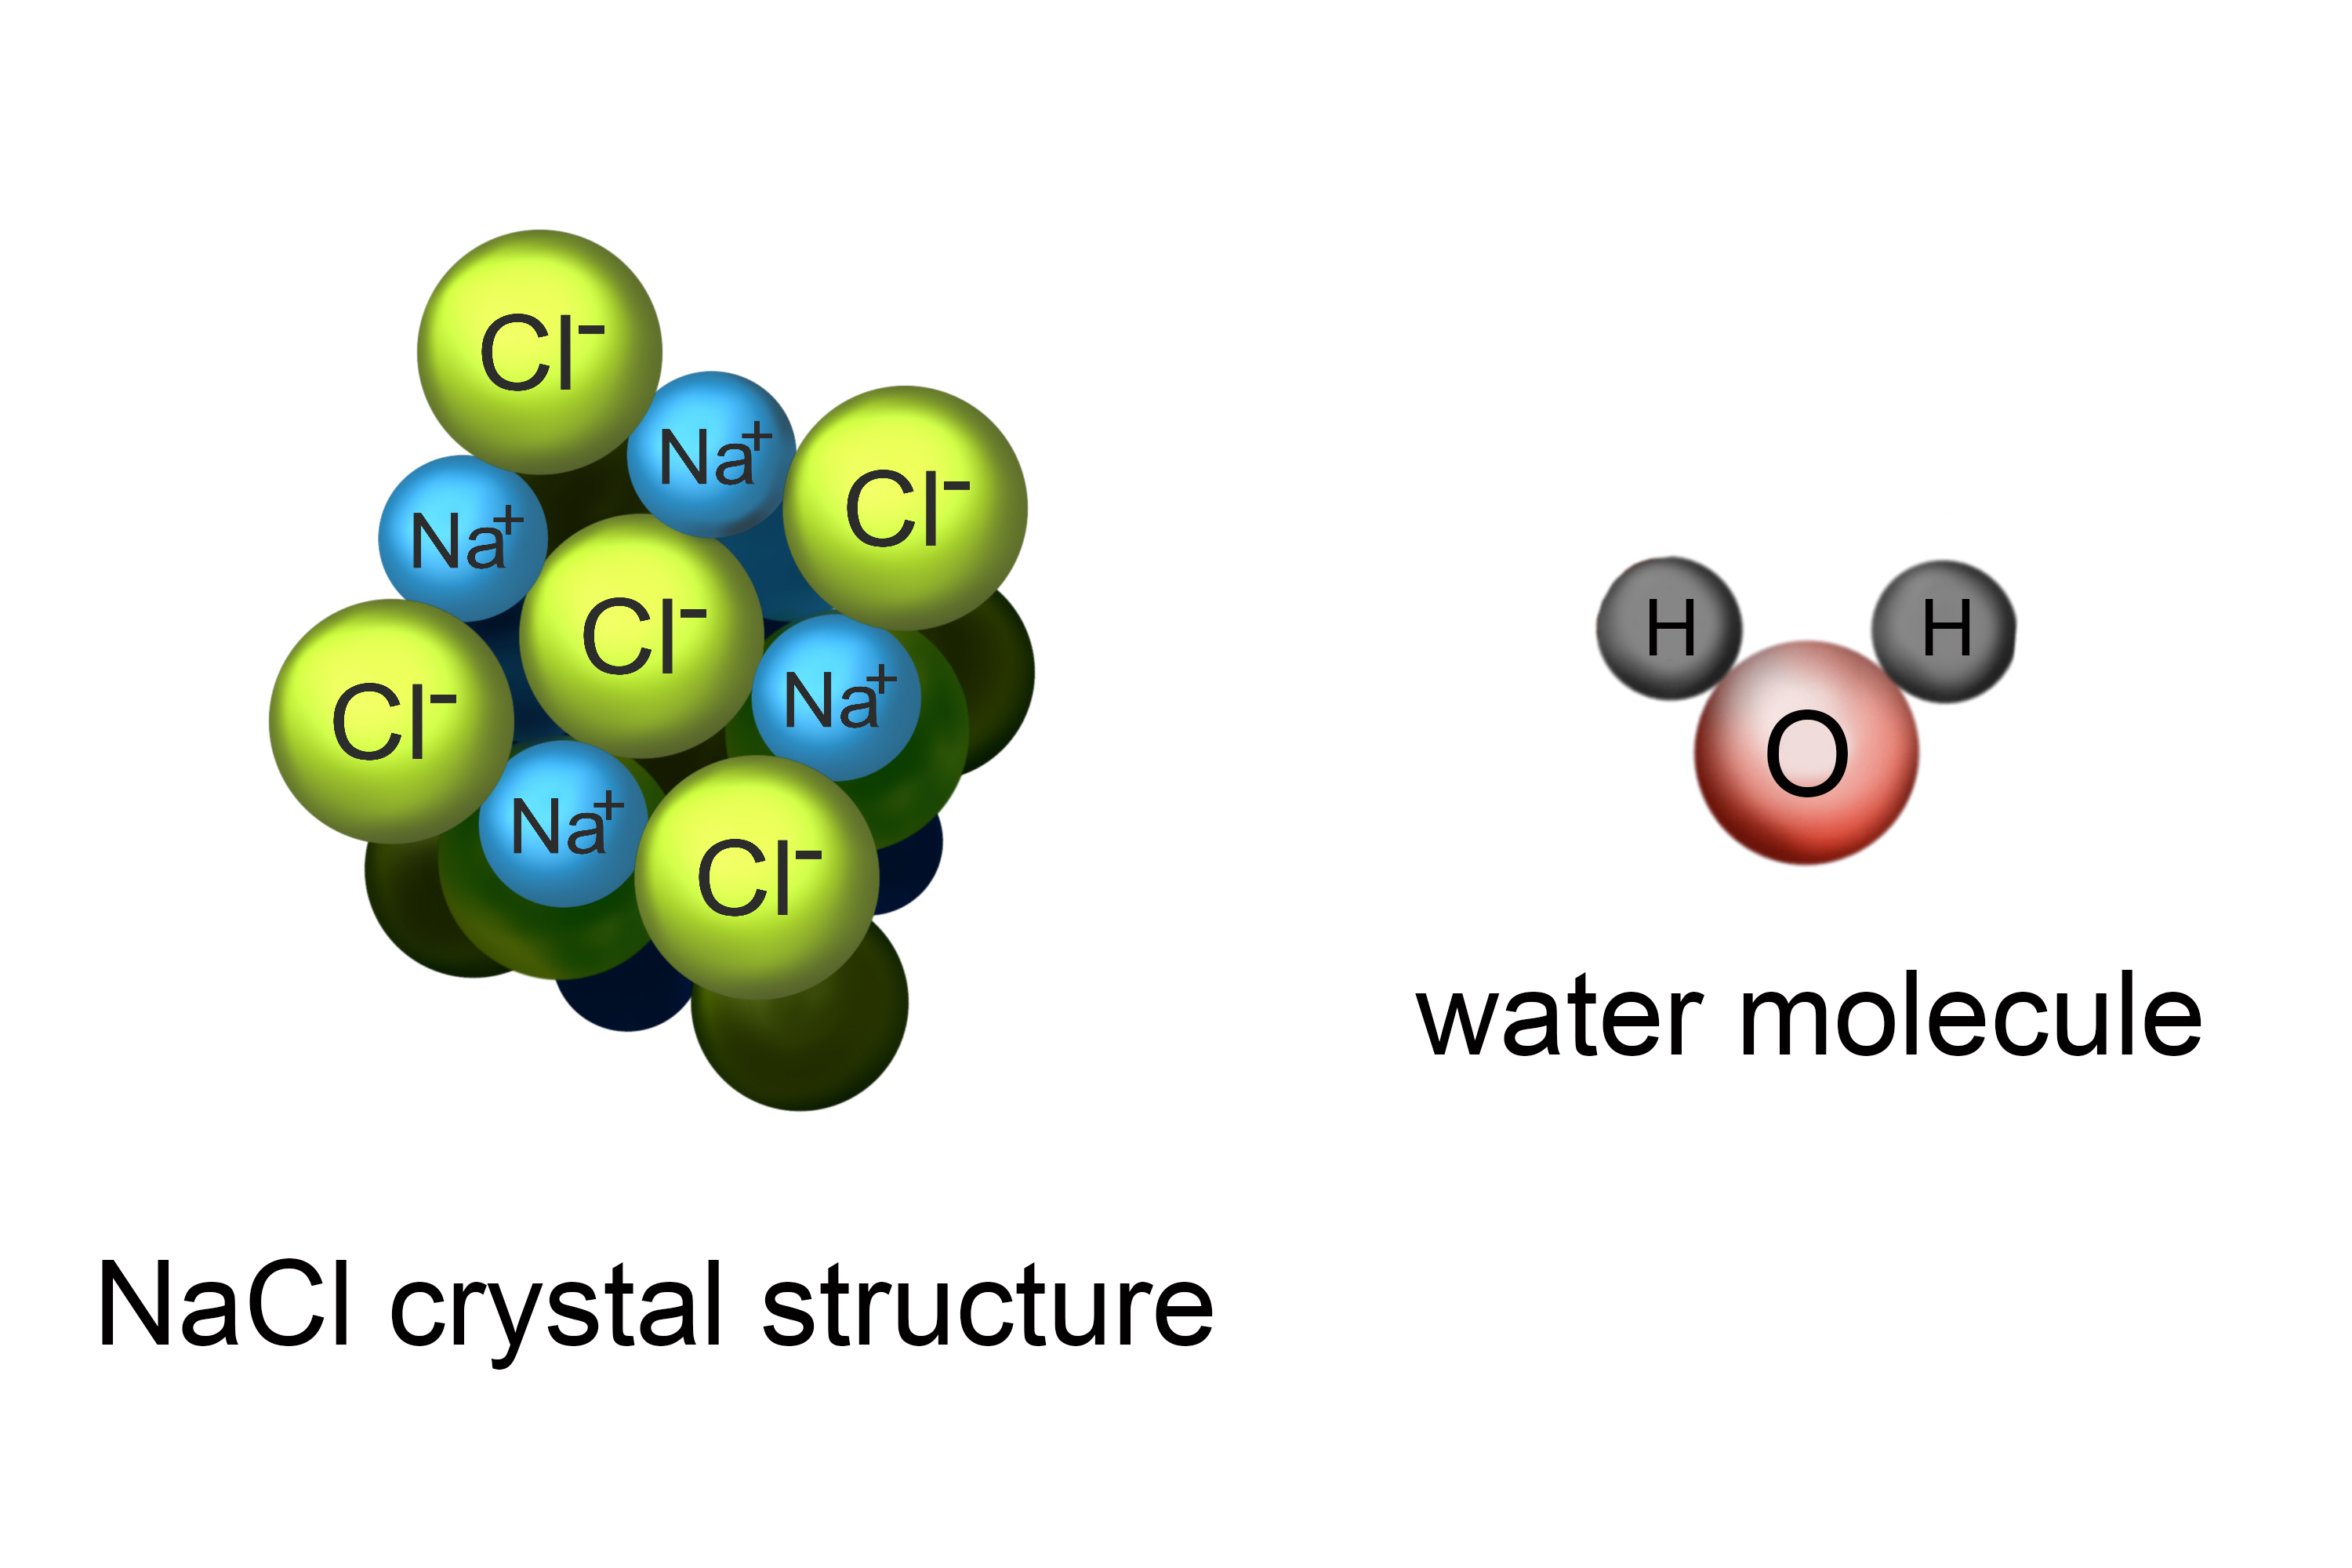 Structure of particles in a NaCI crystal molecule including water molecule